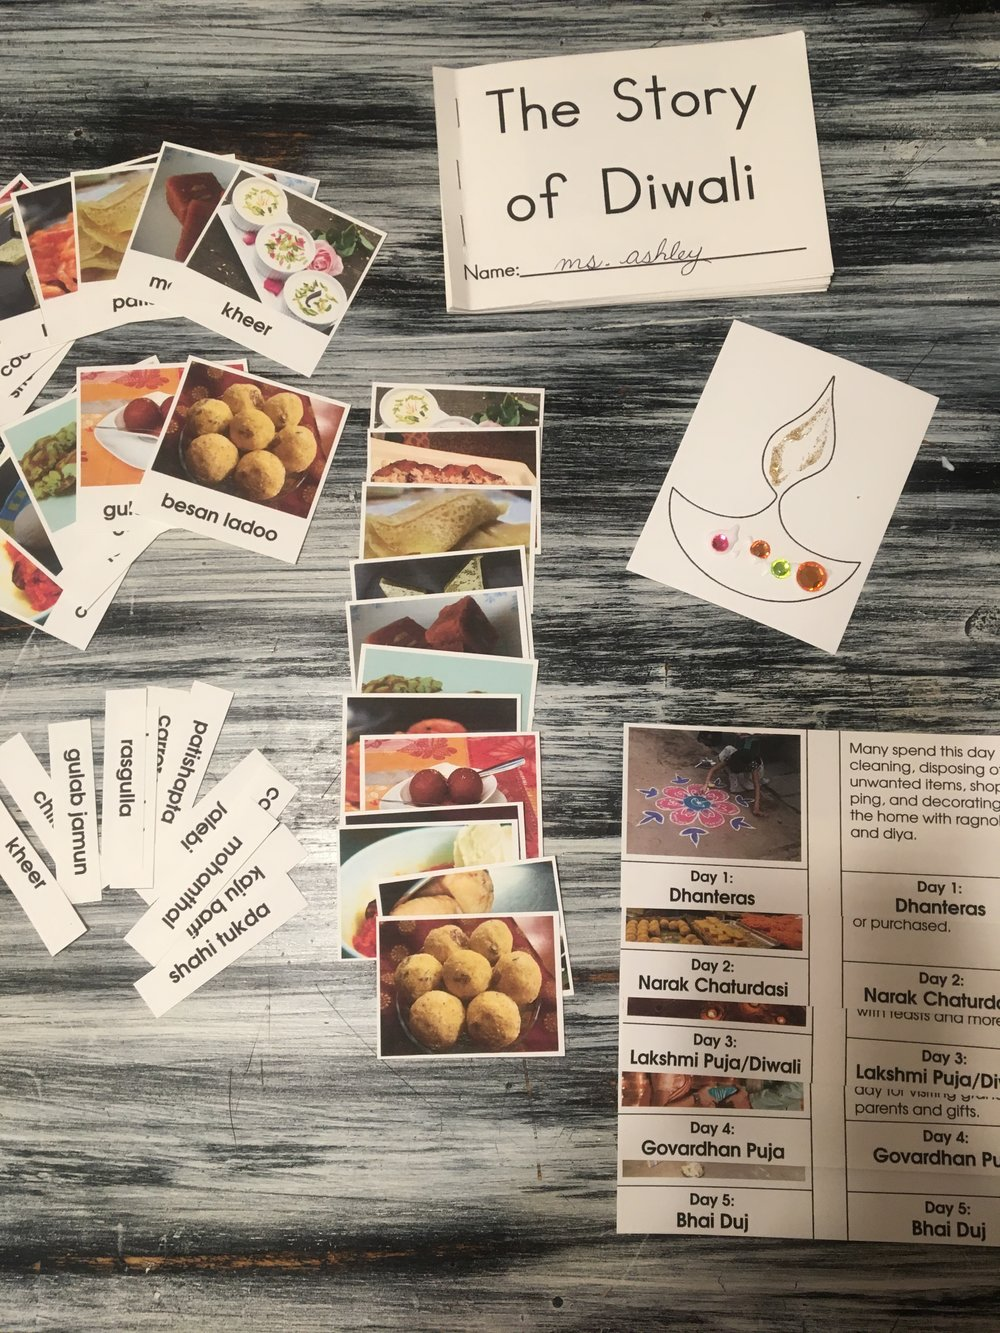 Just some of the Diwali materials included!